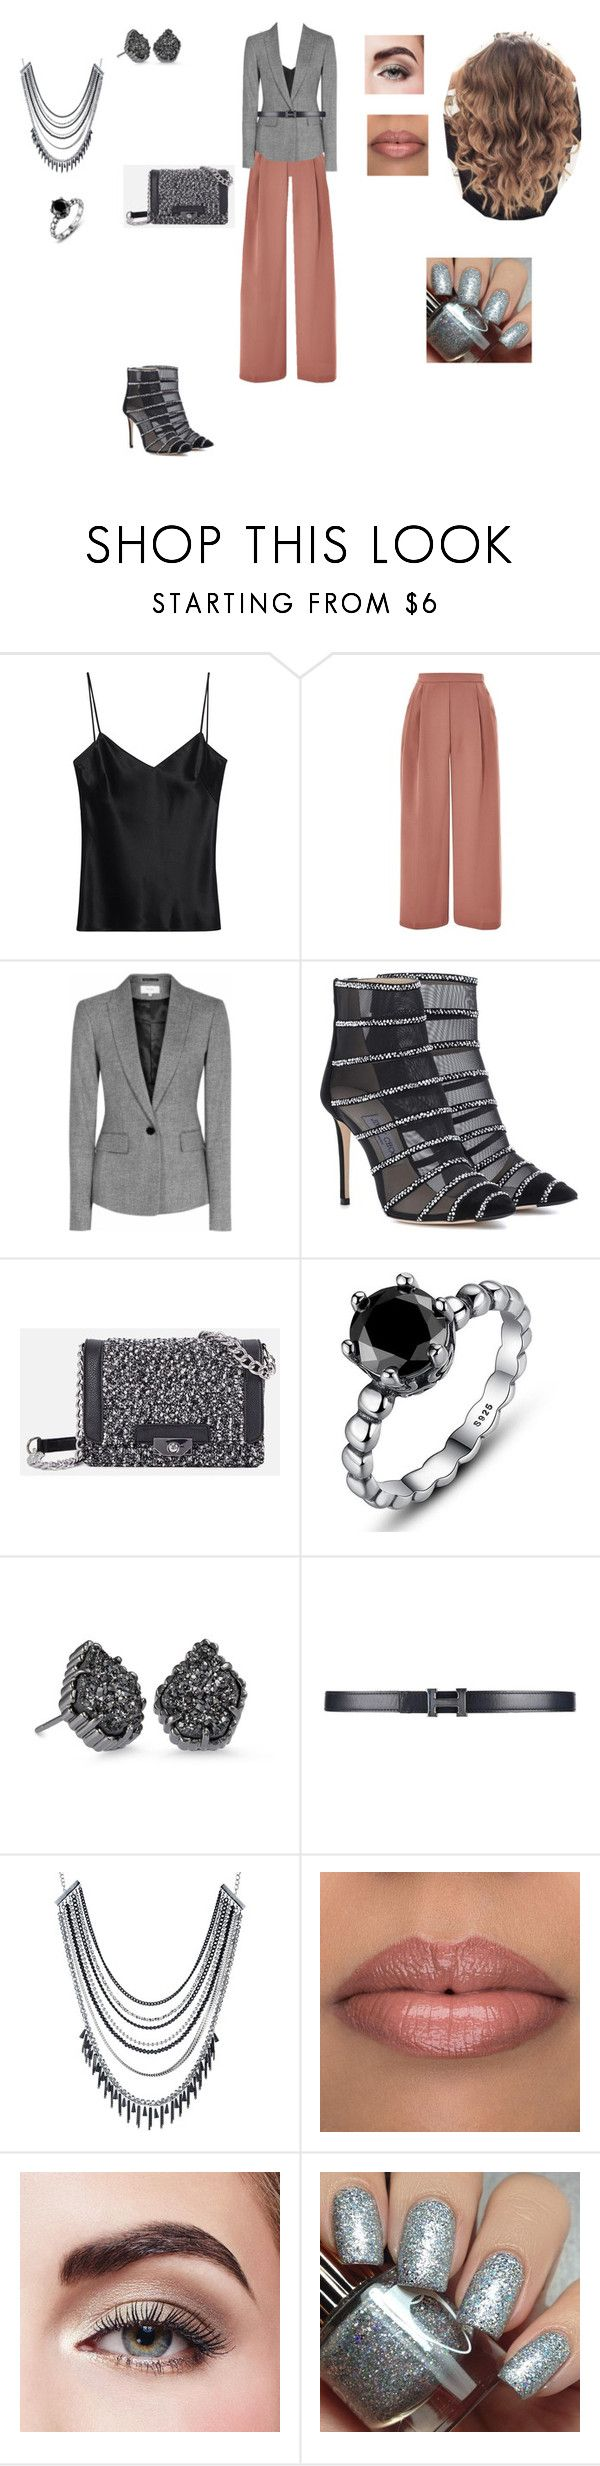 """chic outfit"" by helena94-1 on Polyvore featuring Galvan, Topshop, Reiss, Jimmy Choo, JustFab, Kendra Scott, ABS by Allen Schwartz, Avon, Dimepiece and polyvorefashion"